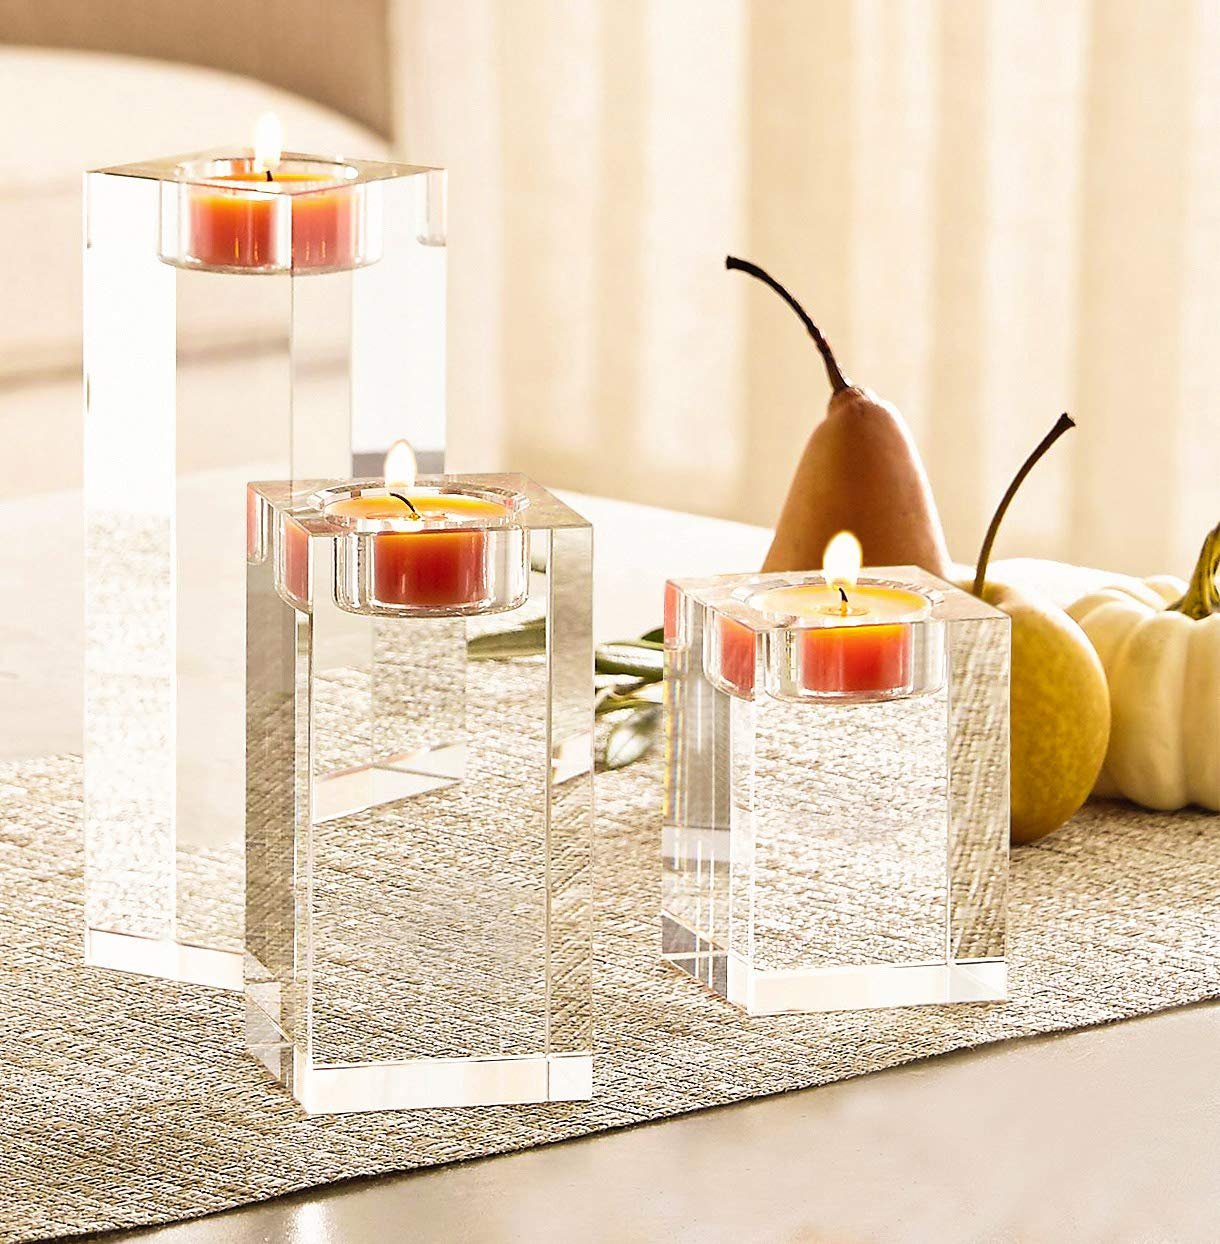 Amazing Home Huge Crystal Pillar Candle Holders 444 Set of 2,Decorative Home Decor LED Candles Stand,Prepackaged Elegant Heavy Solid Square Centerpieces for Home Decoration Party Wedding Ceremony Le Sens Amazing Home